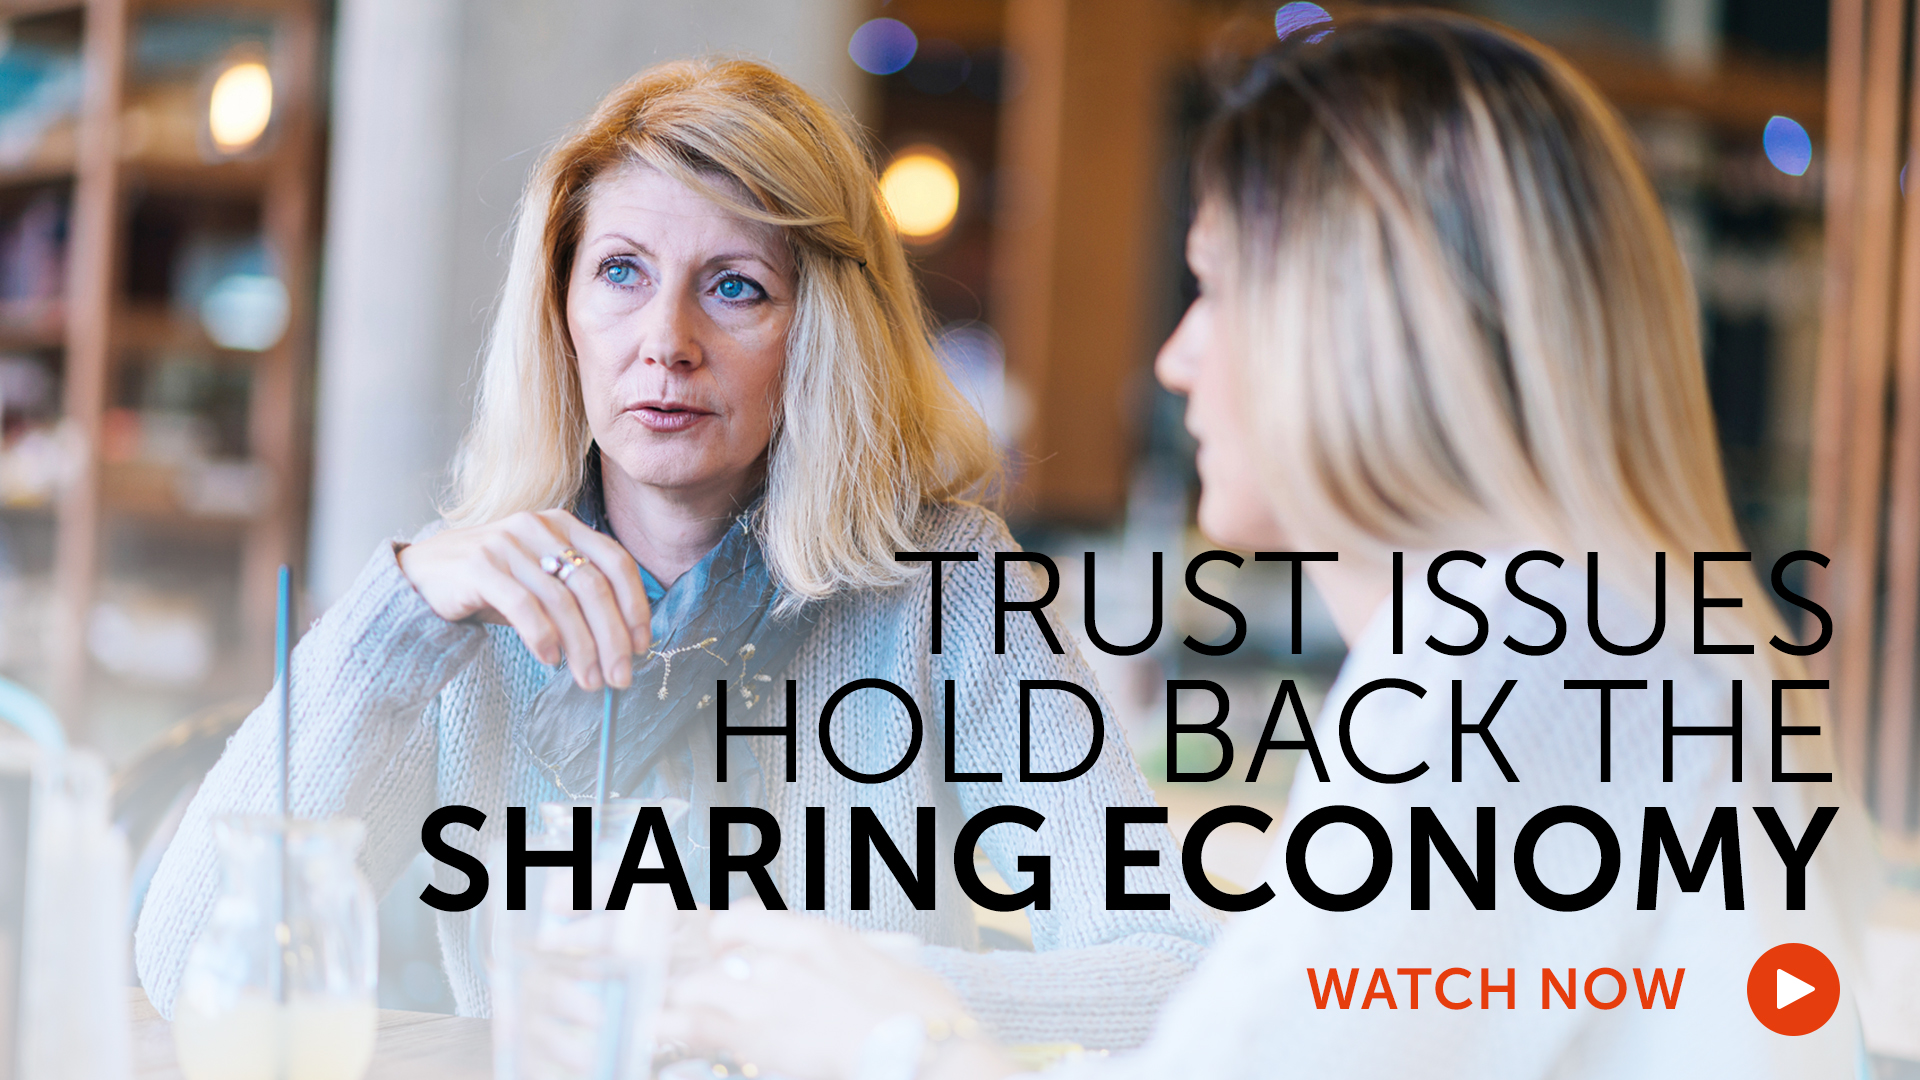 Briefing: Trust issues hold back the Sharing Economy